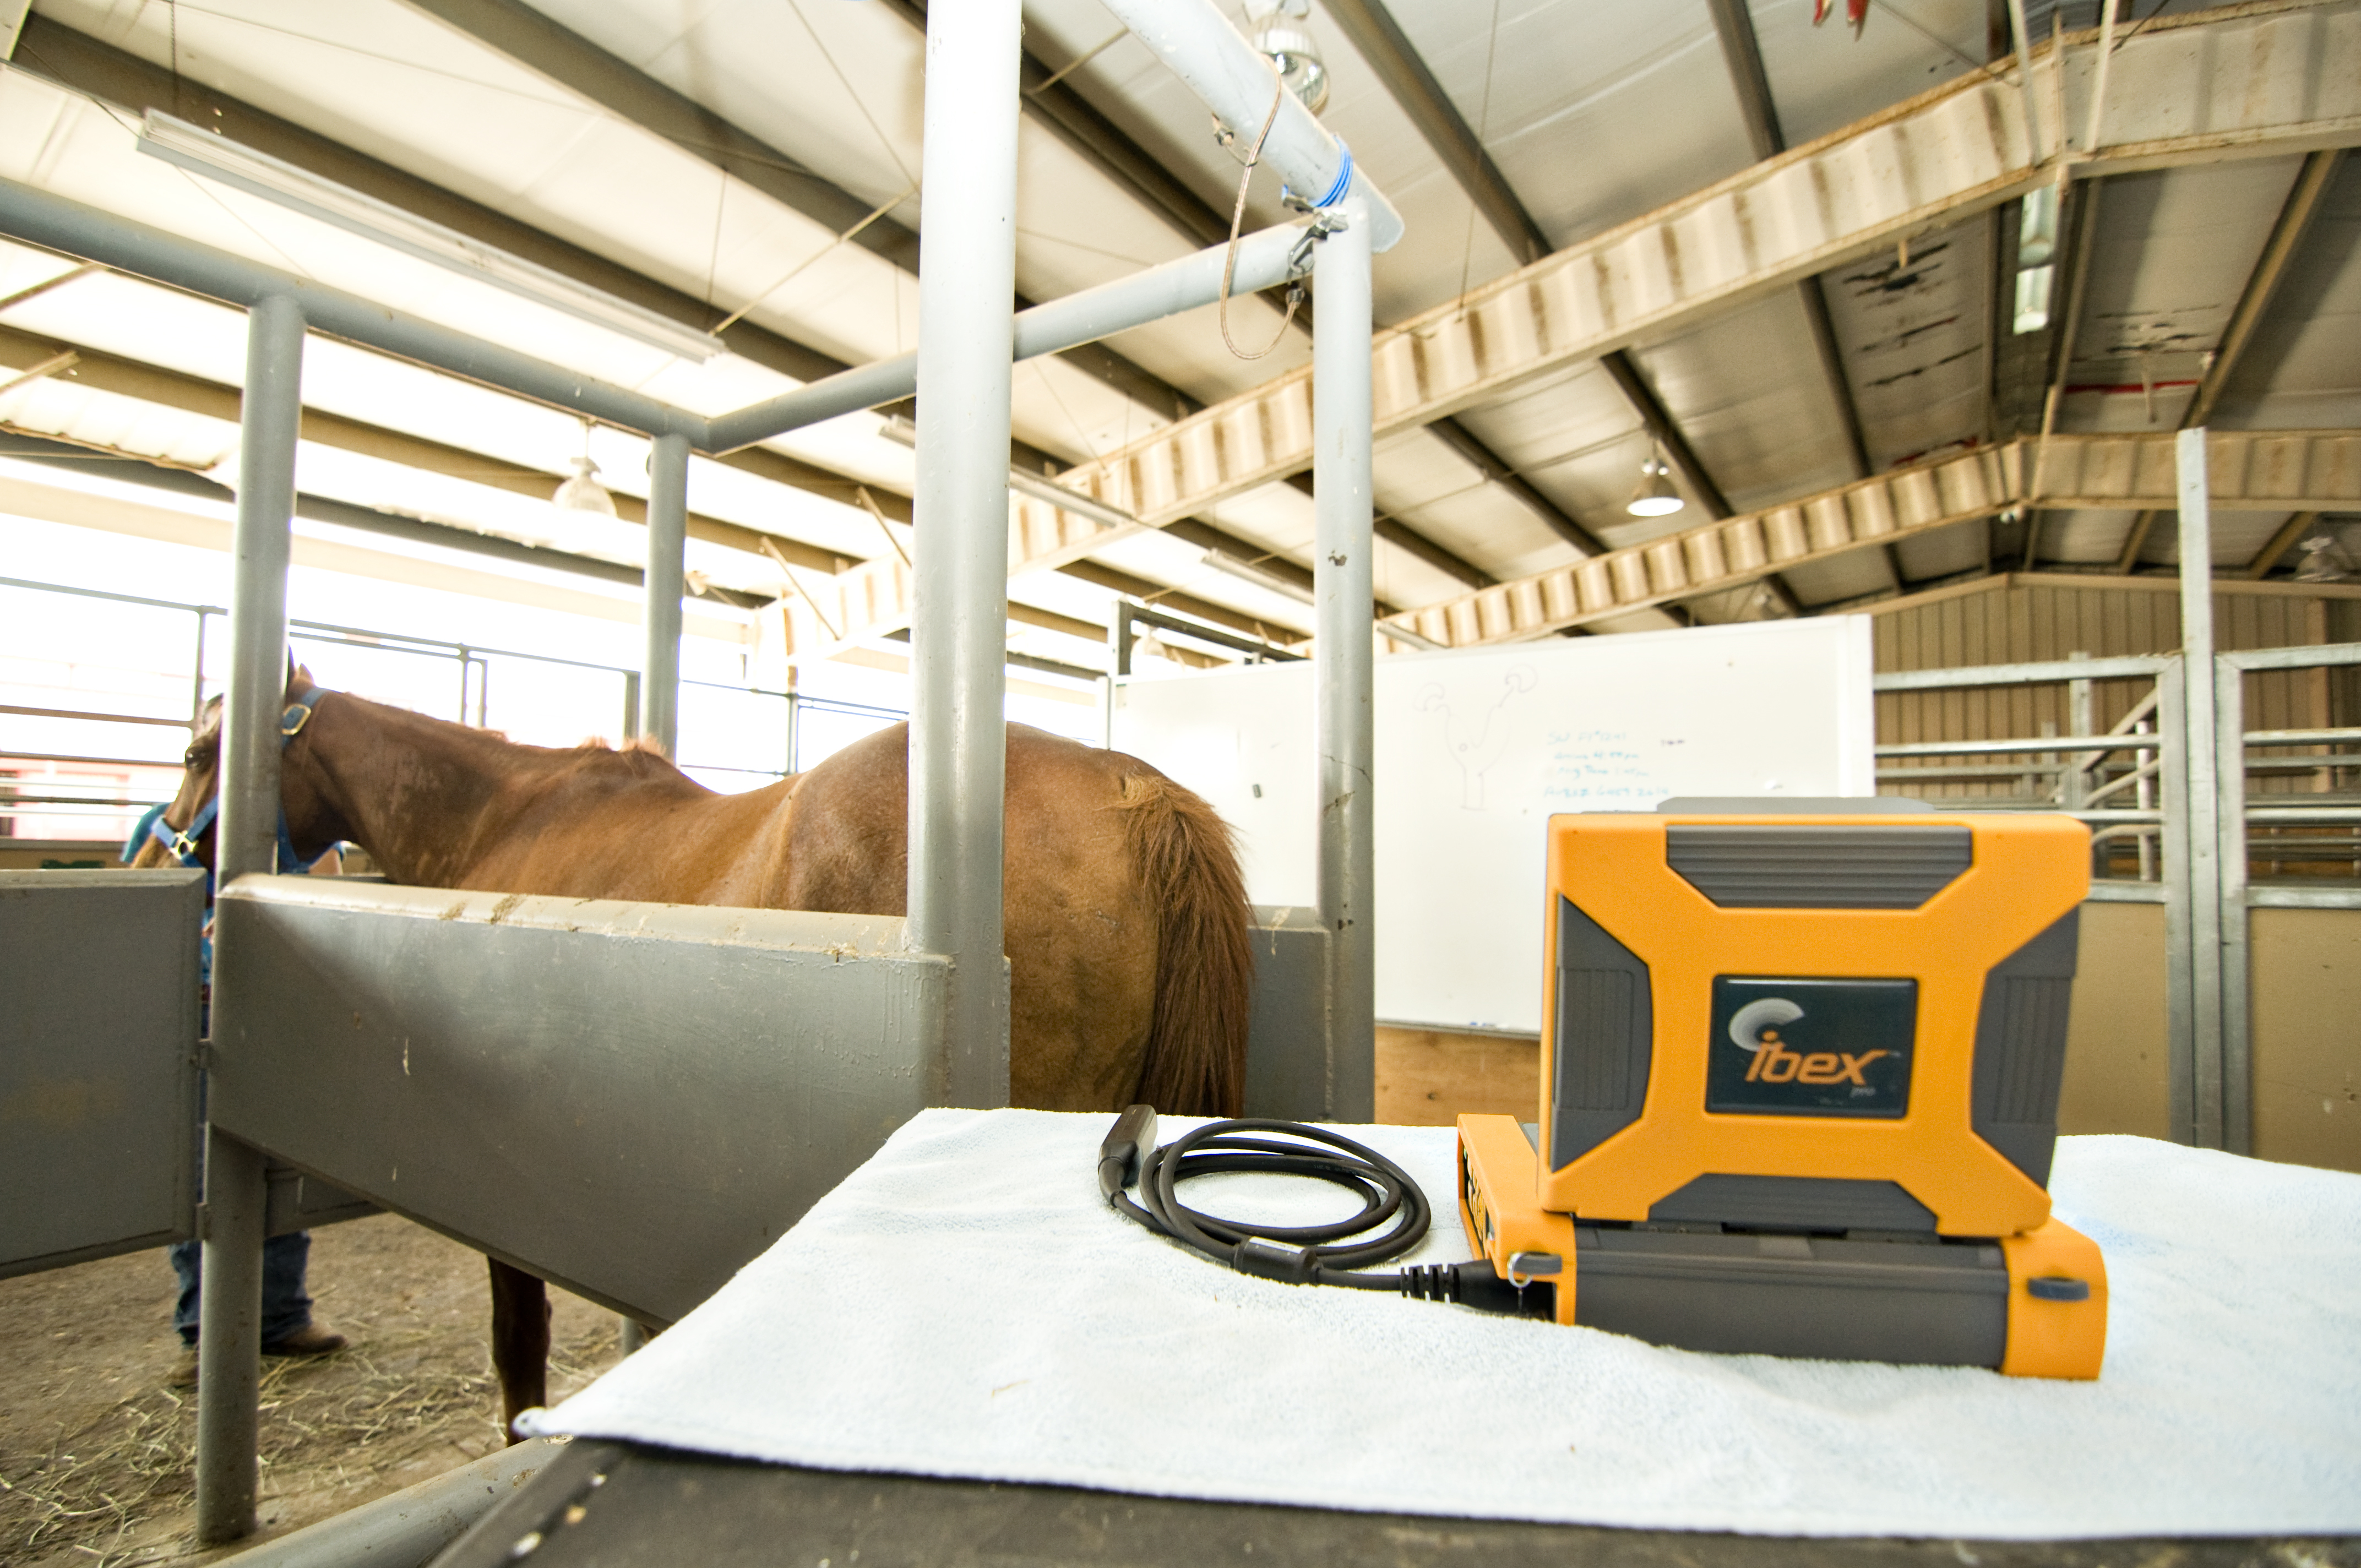 veterinary ultrasound, equine ultrasound, animal ultrasound